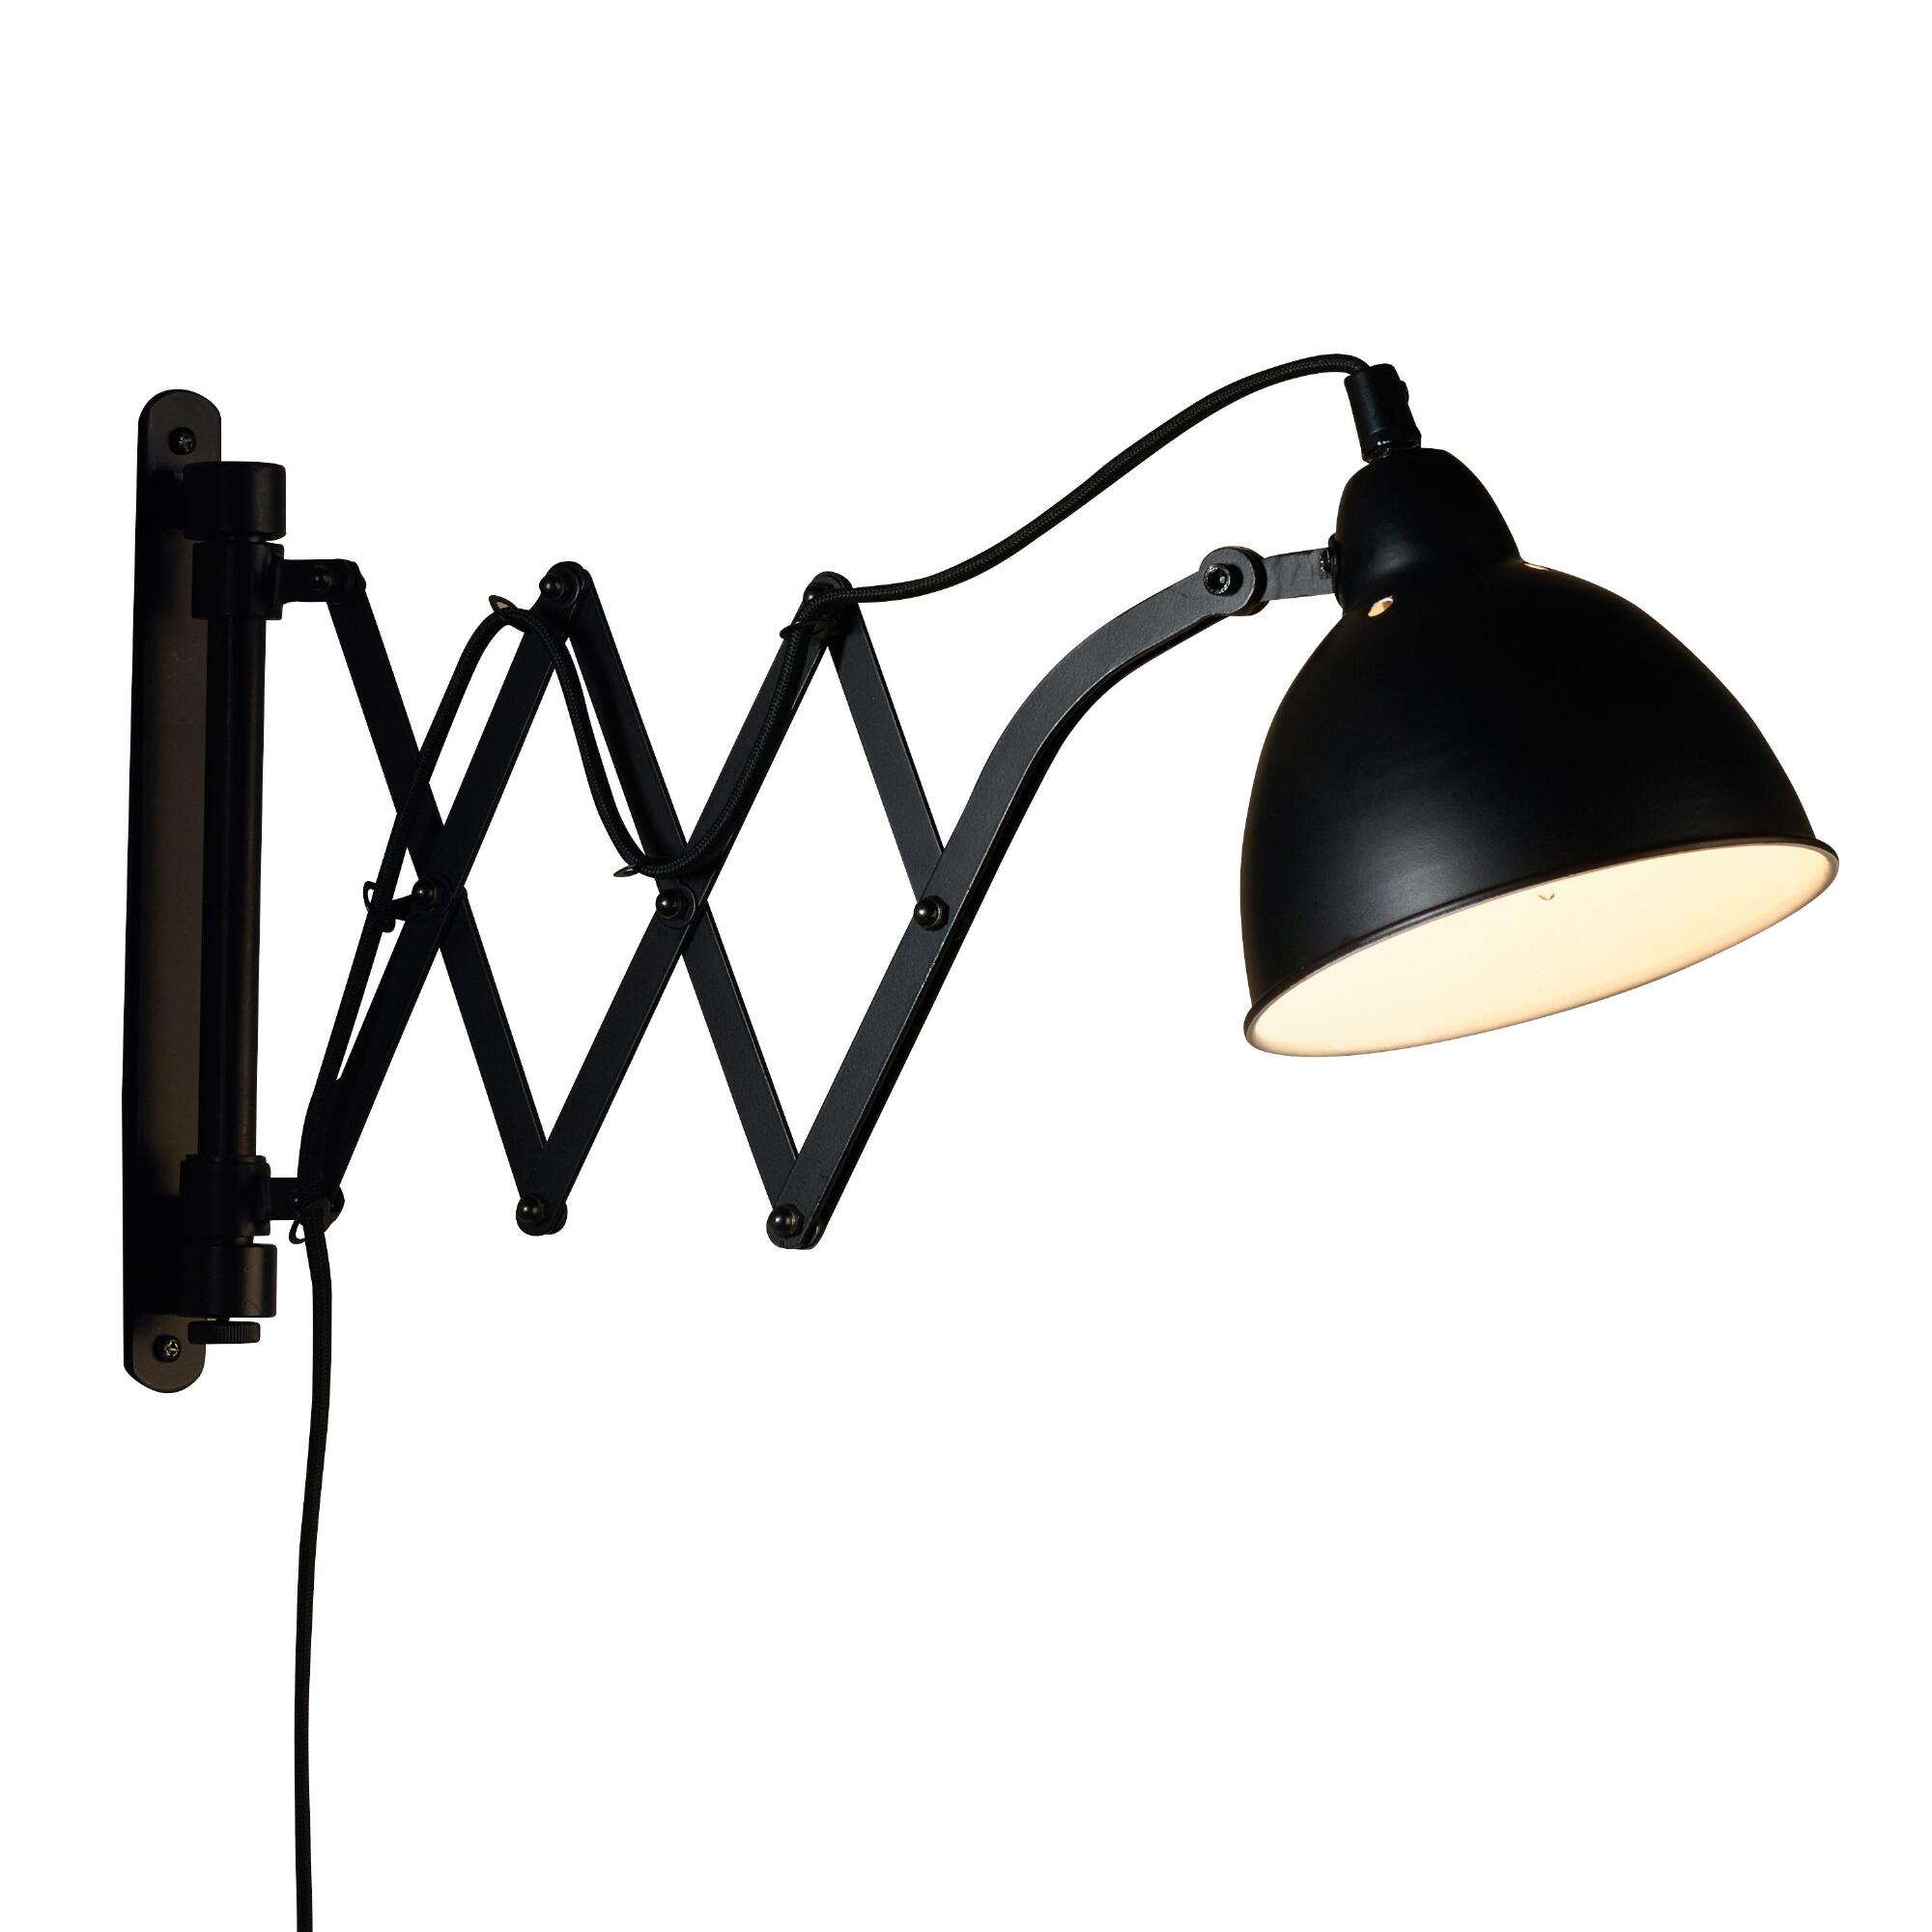 Sconces and wall sconce lighting world market black metal accordion wall sconce aloadofball Choice Image